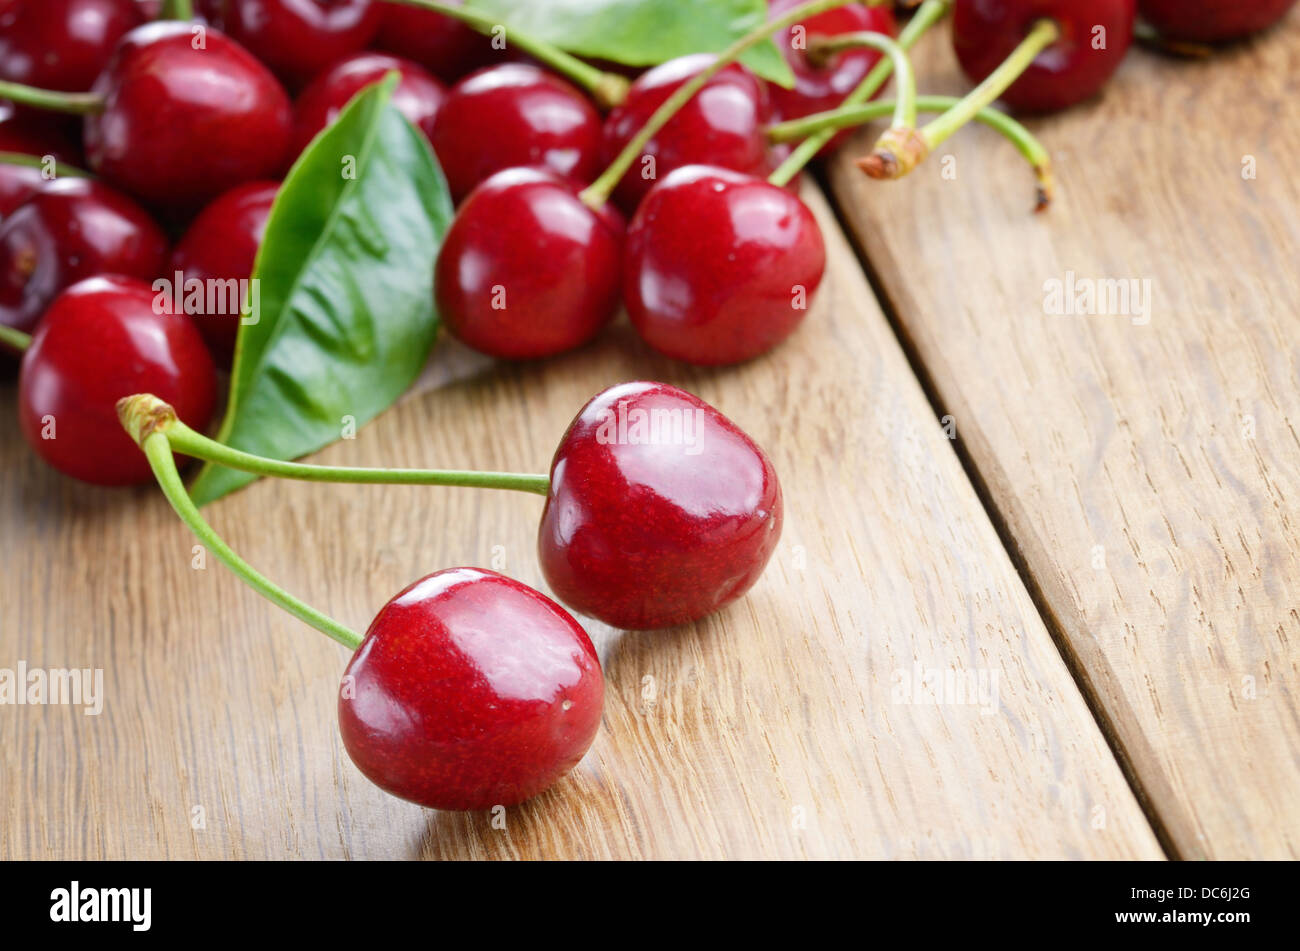 Organic Cherries on the wooden table closeup - Stock Image